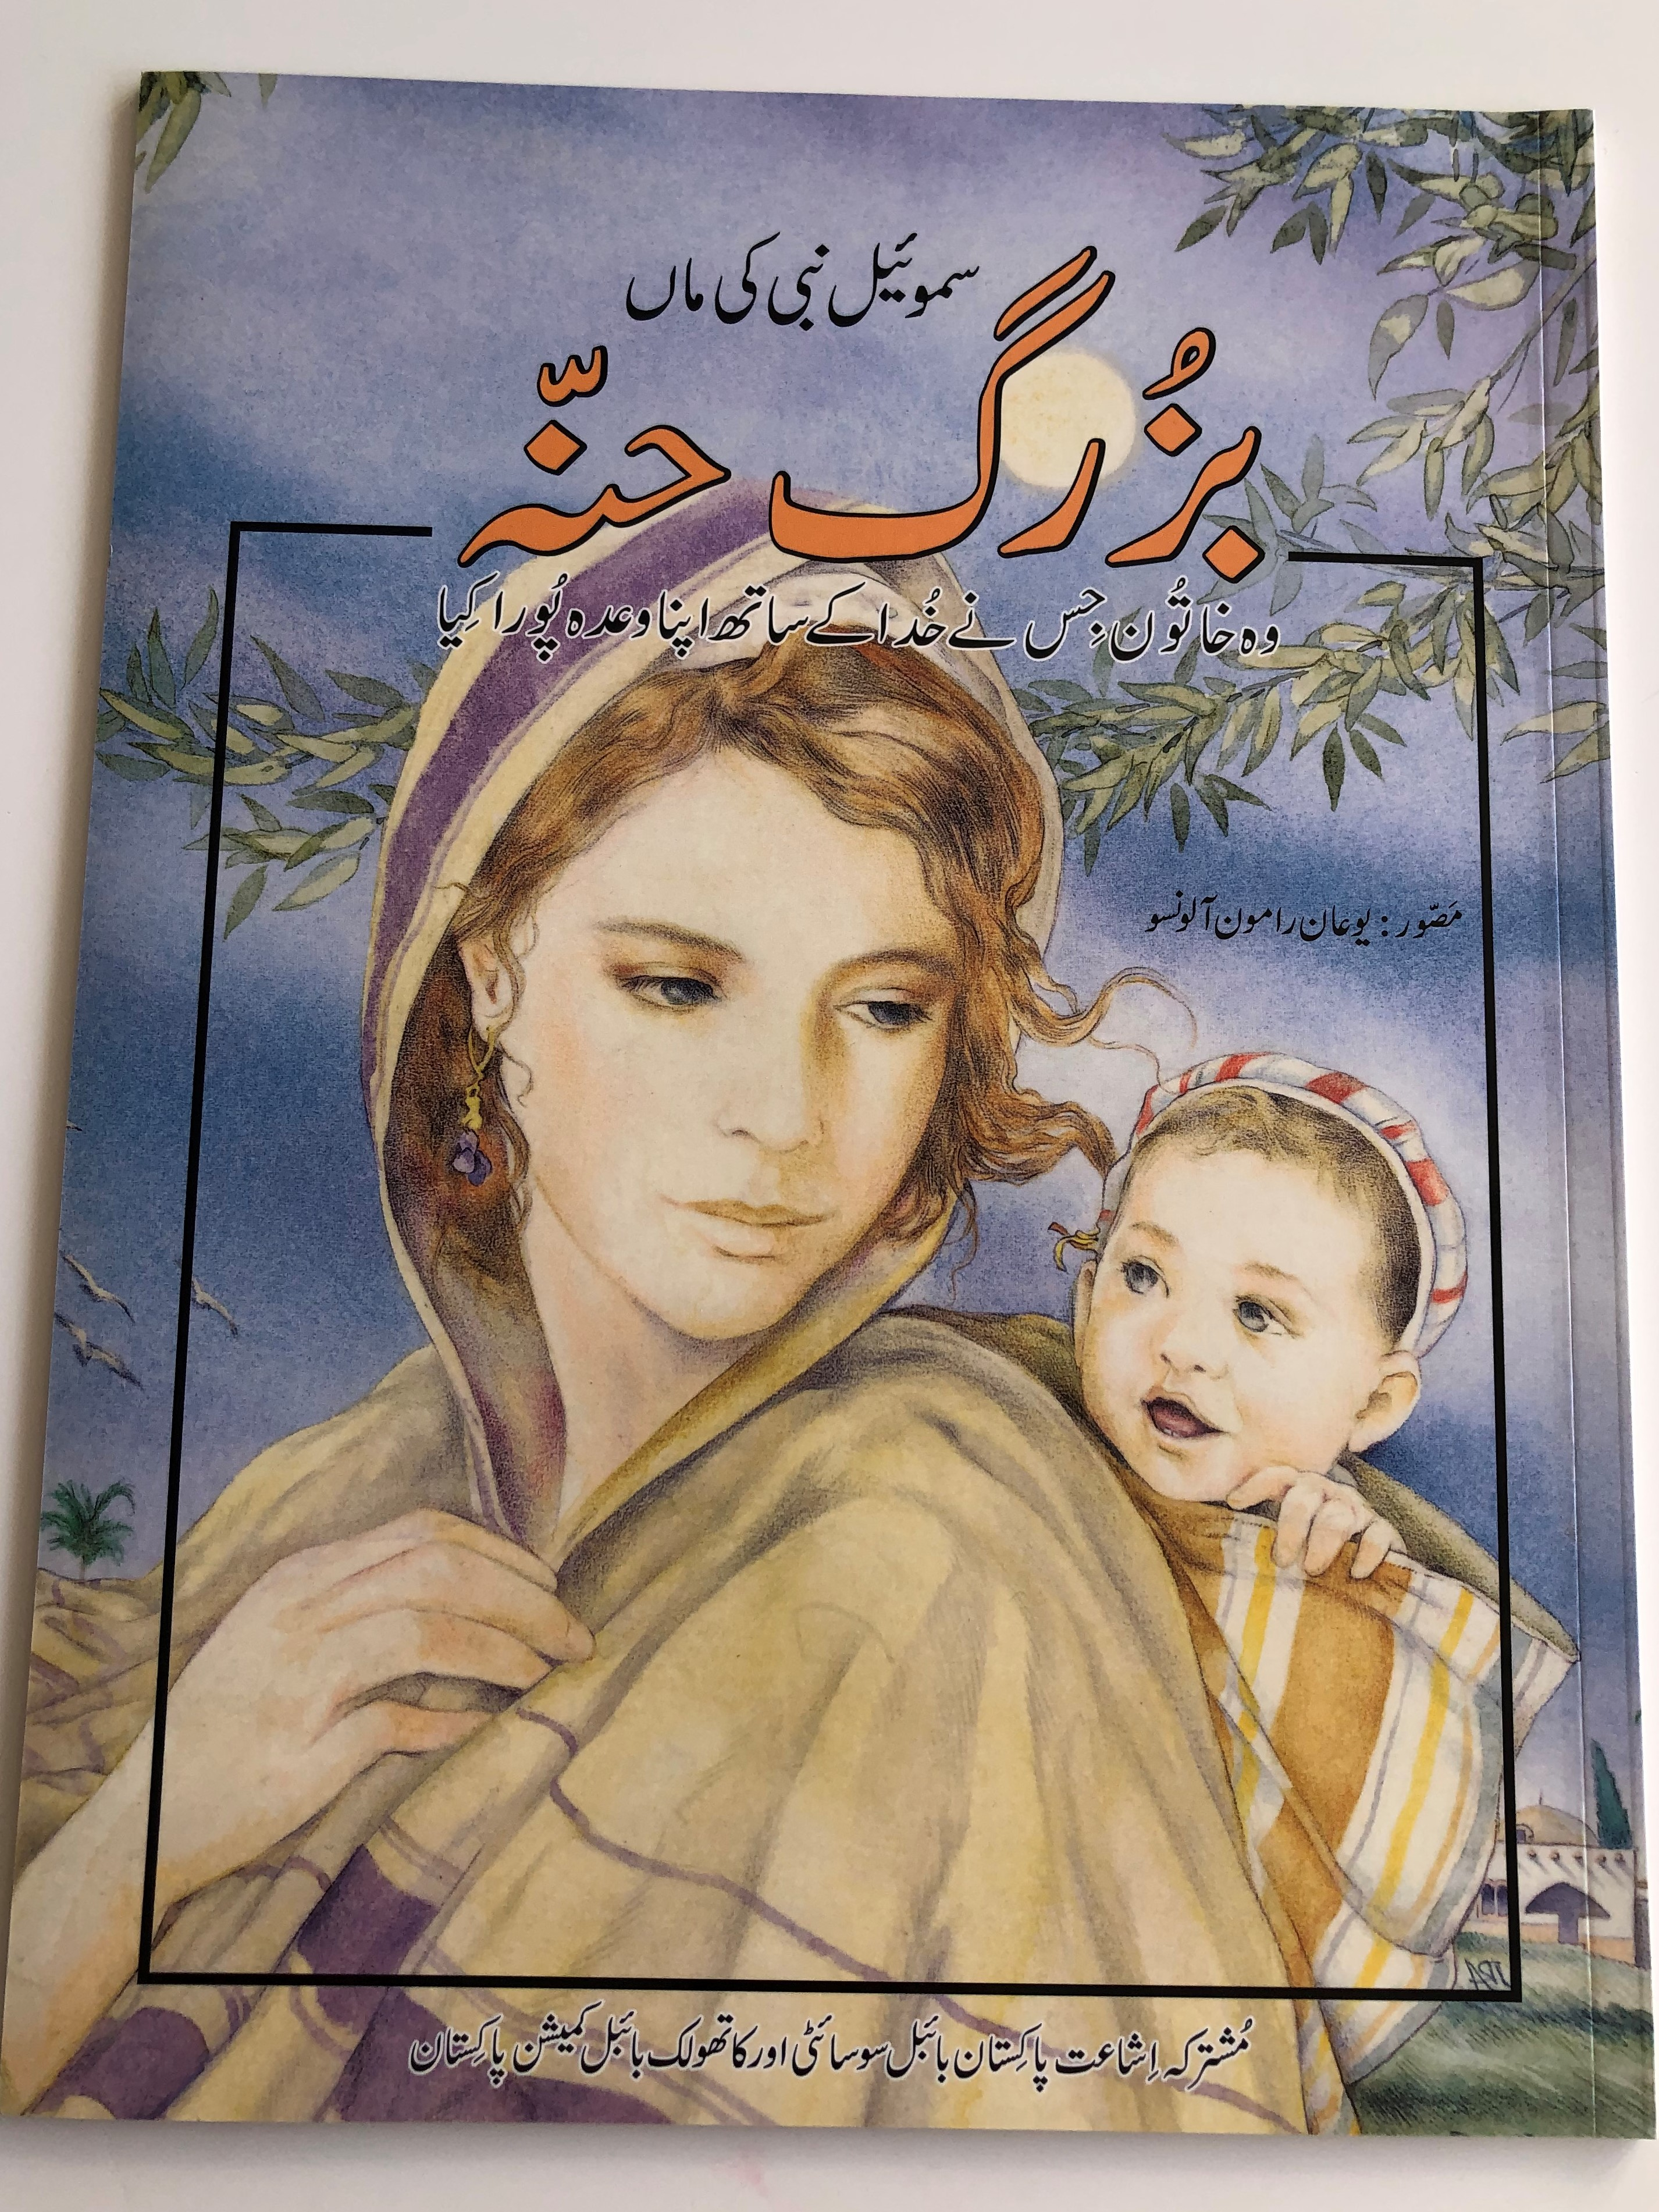 hannah-a-woman-who-kept-her-promise-to-god-urdu-1.jpg